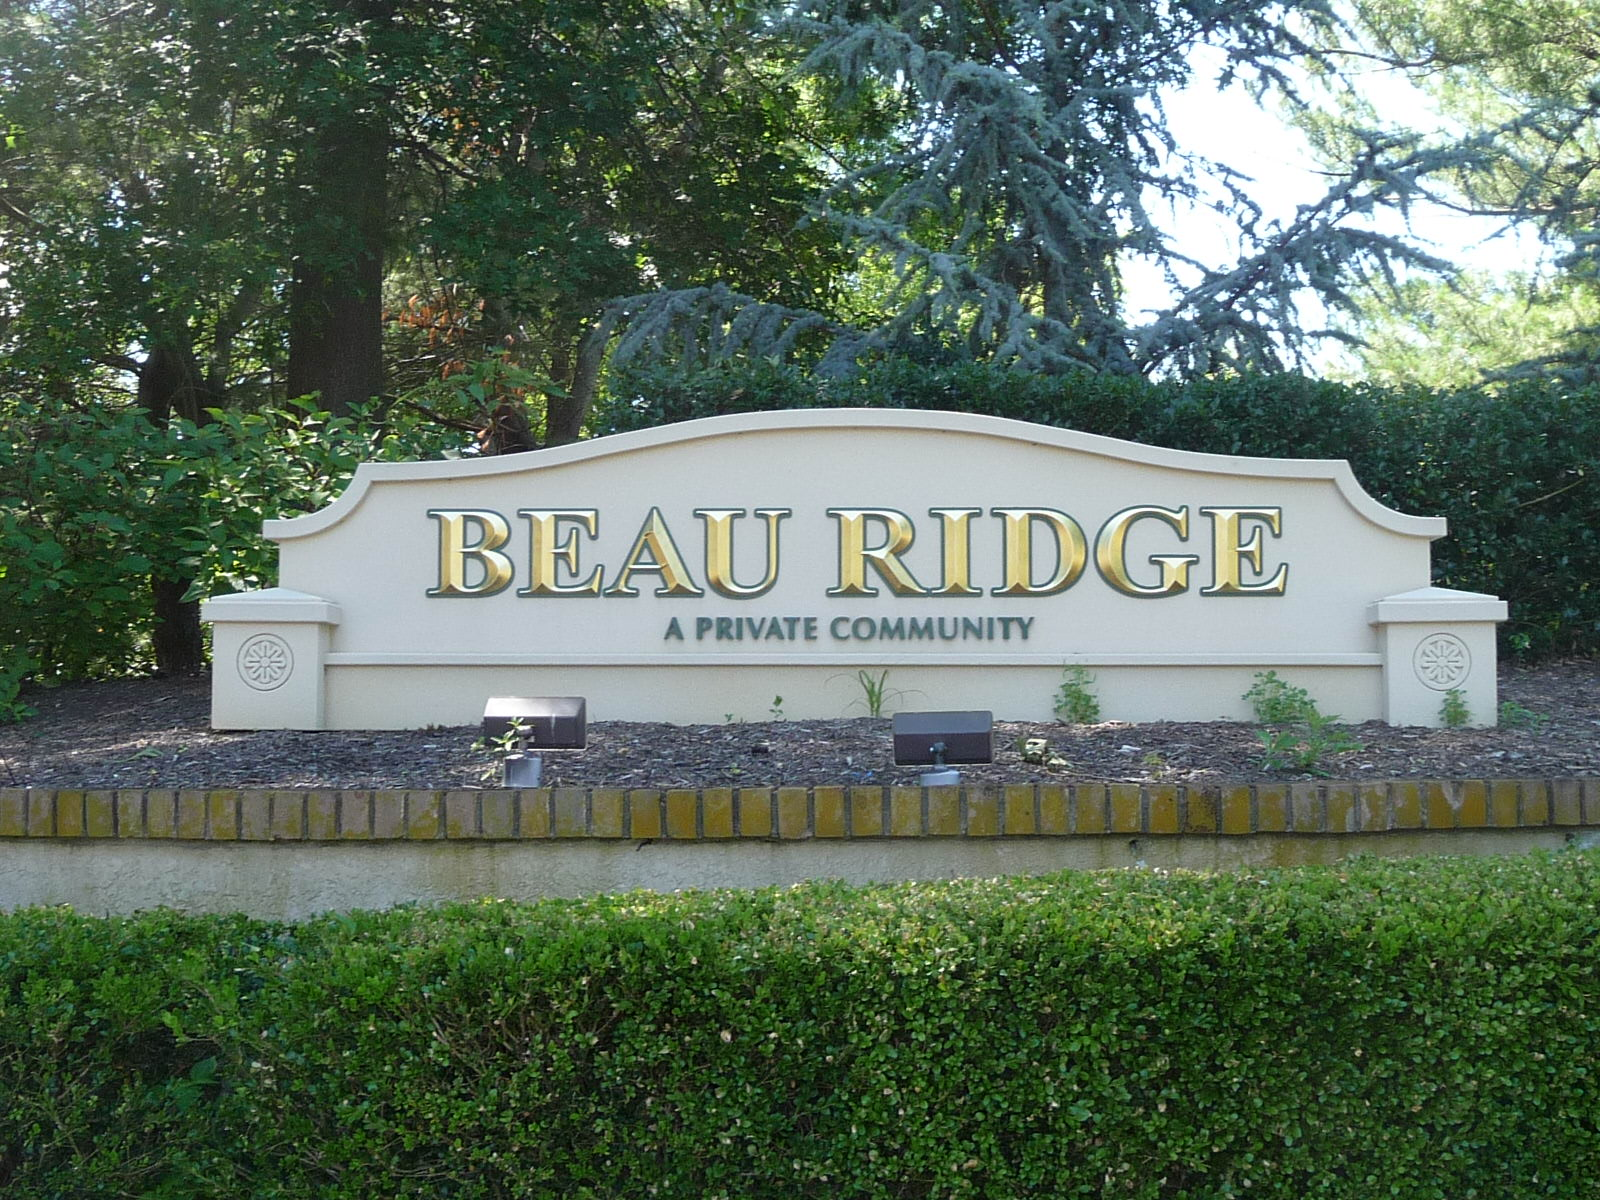 Beau Ridge condos are in Holmdel NJ just off of Laurel Avenue.